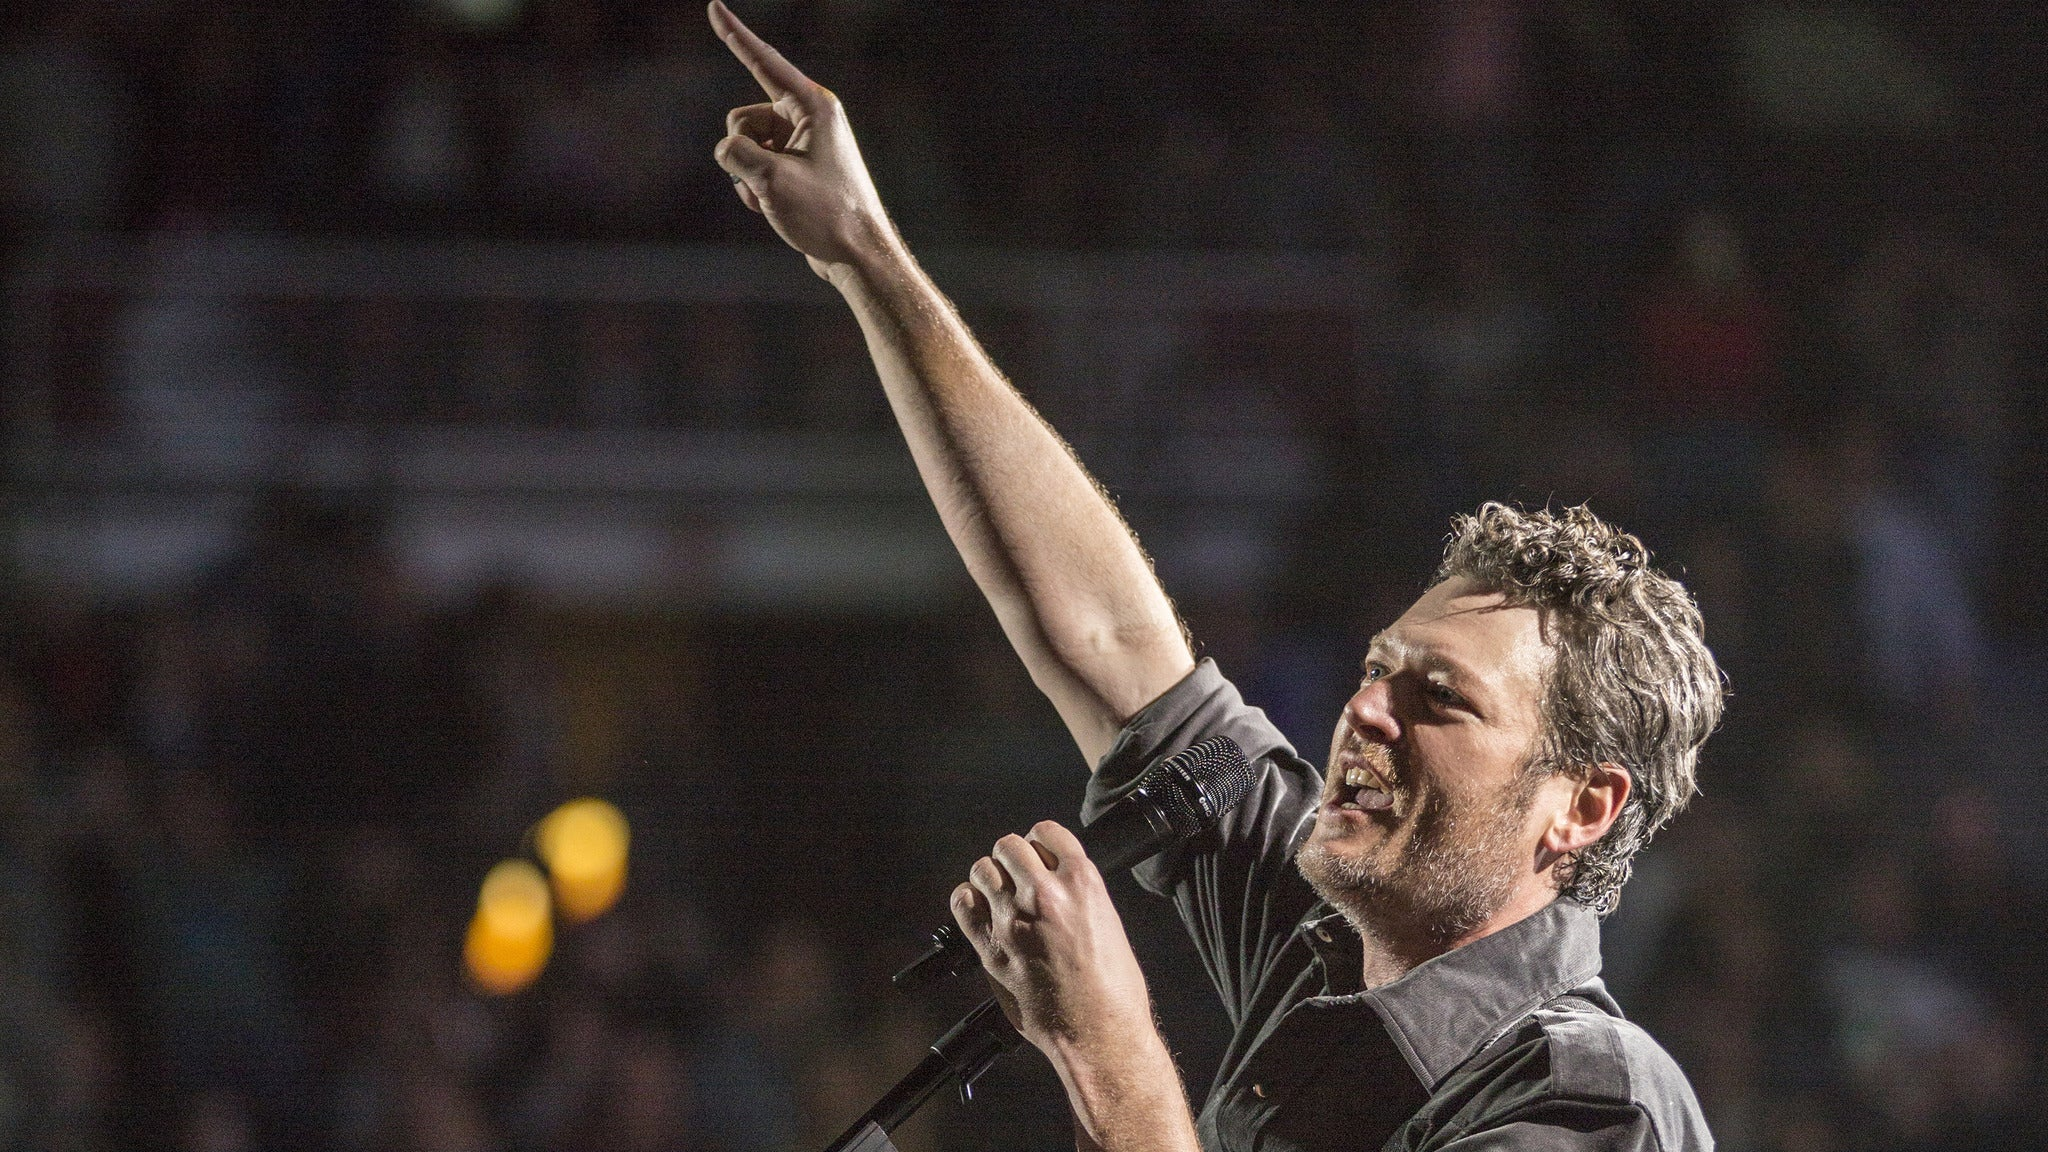 Blake Shelton at Wells Fargo Arena - Des Moines